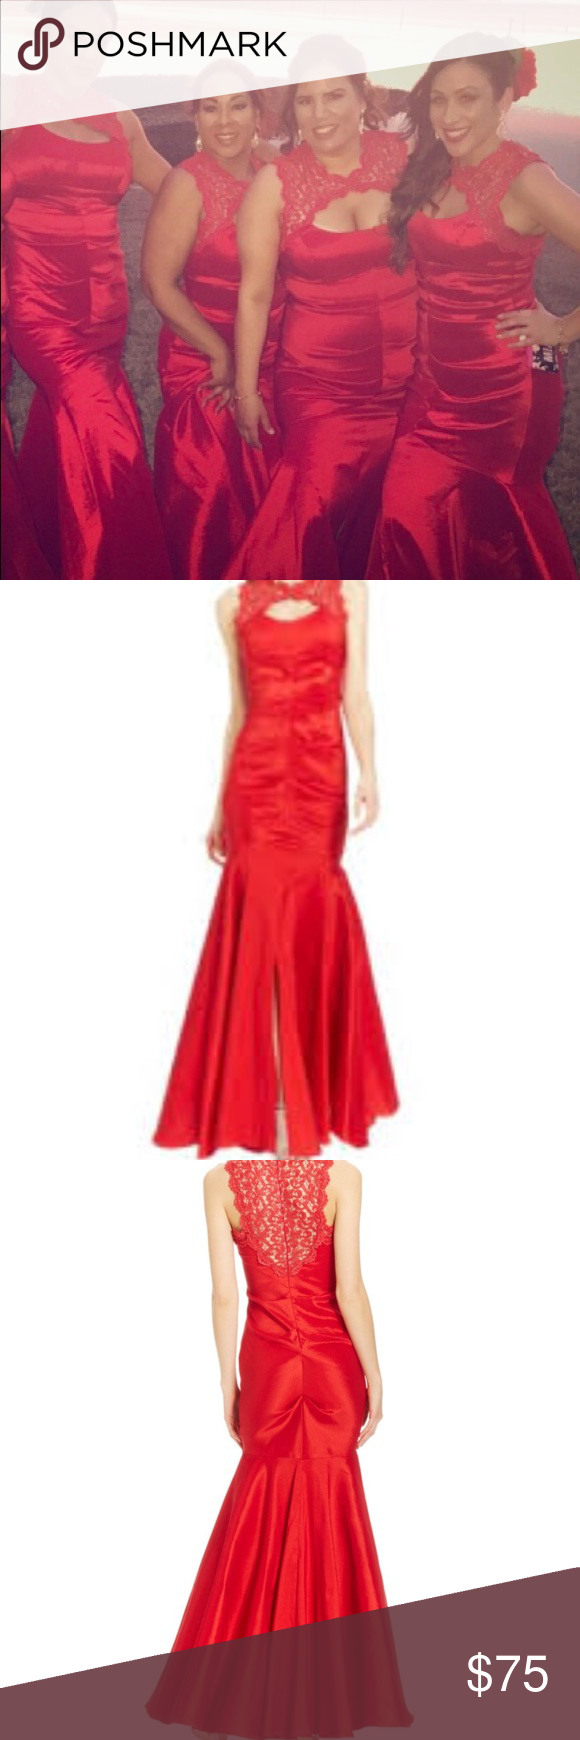 Prom or Bridesmaids dress | Xscape dresses, Red glitter and Lace mermaid